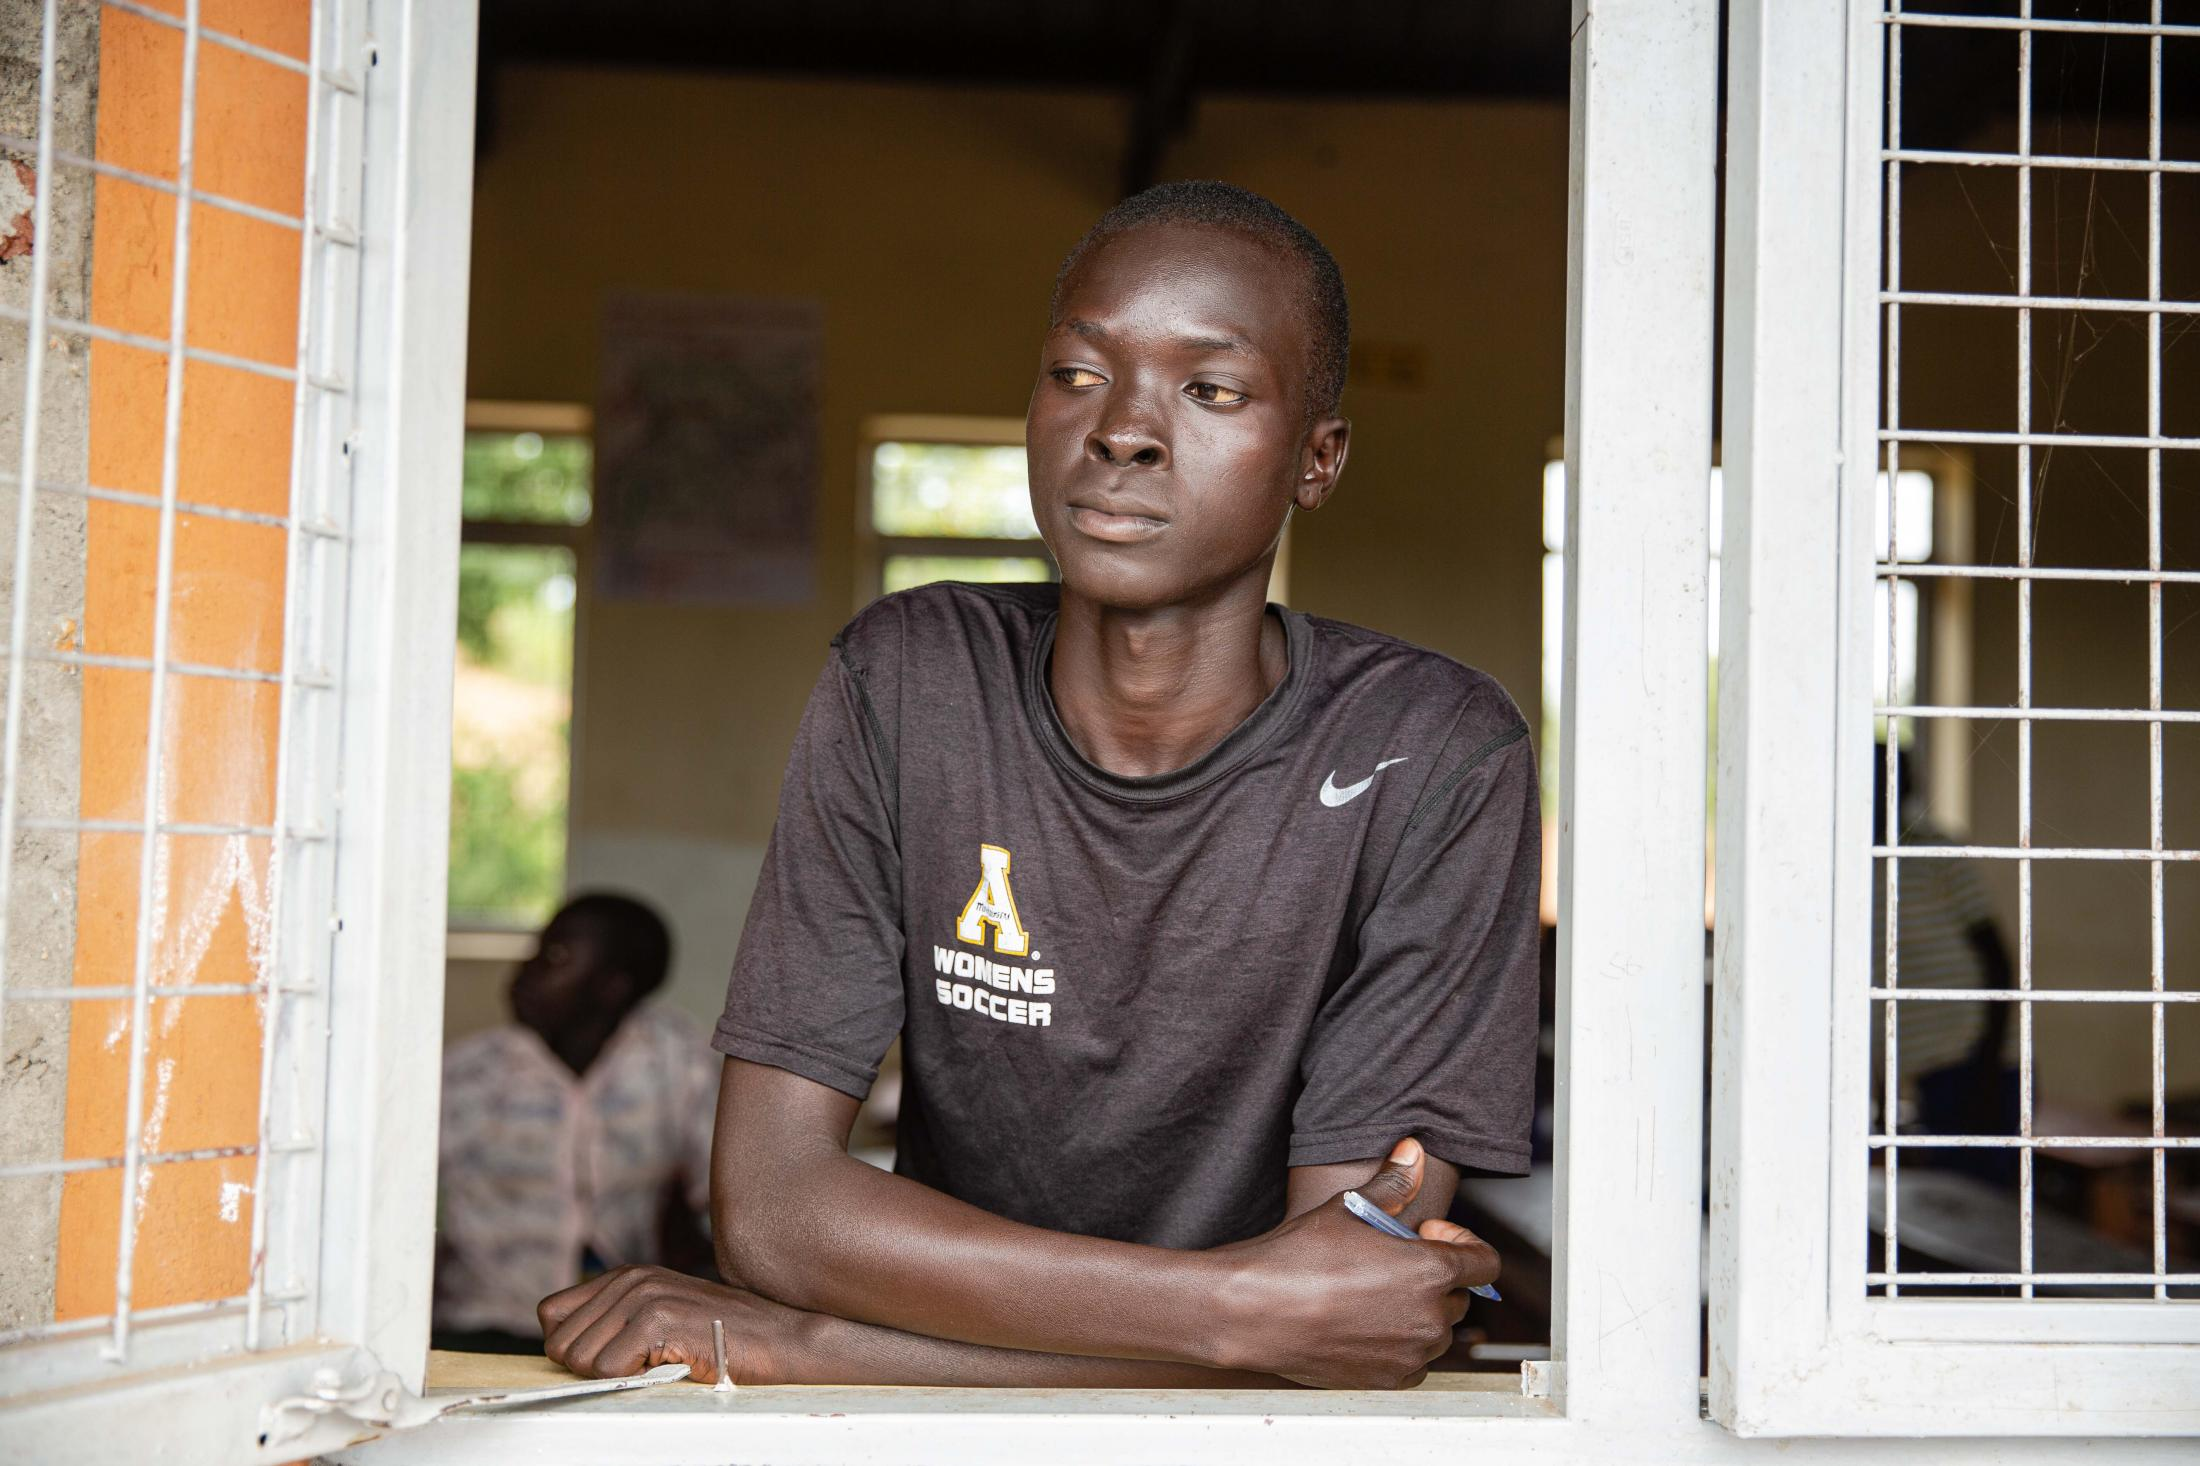 """Joseph Ladu, 15, joined Komgbe primary school under the Accelerated Learning Program in 2018 and is now in level 2. When war broke out in South Sudan in 2016, the family ran separately and he doesn't know if they're still alive or where they are. """"I now have good friends because of school."""" he says. For Norwegian Refugee Council."""